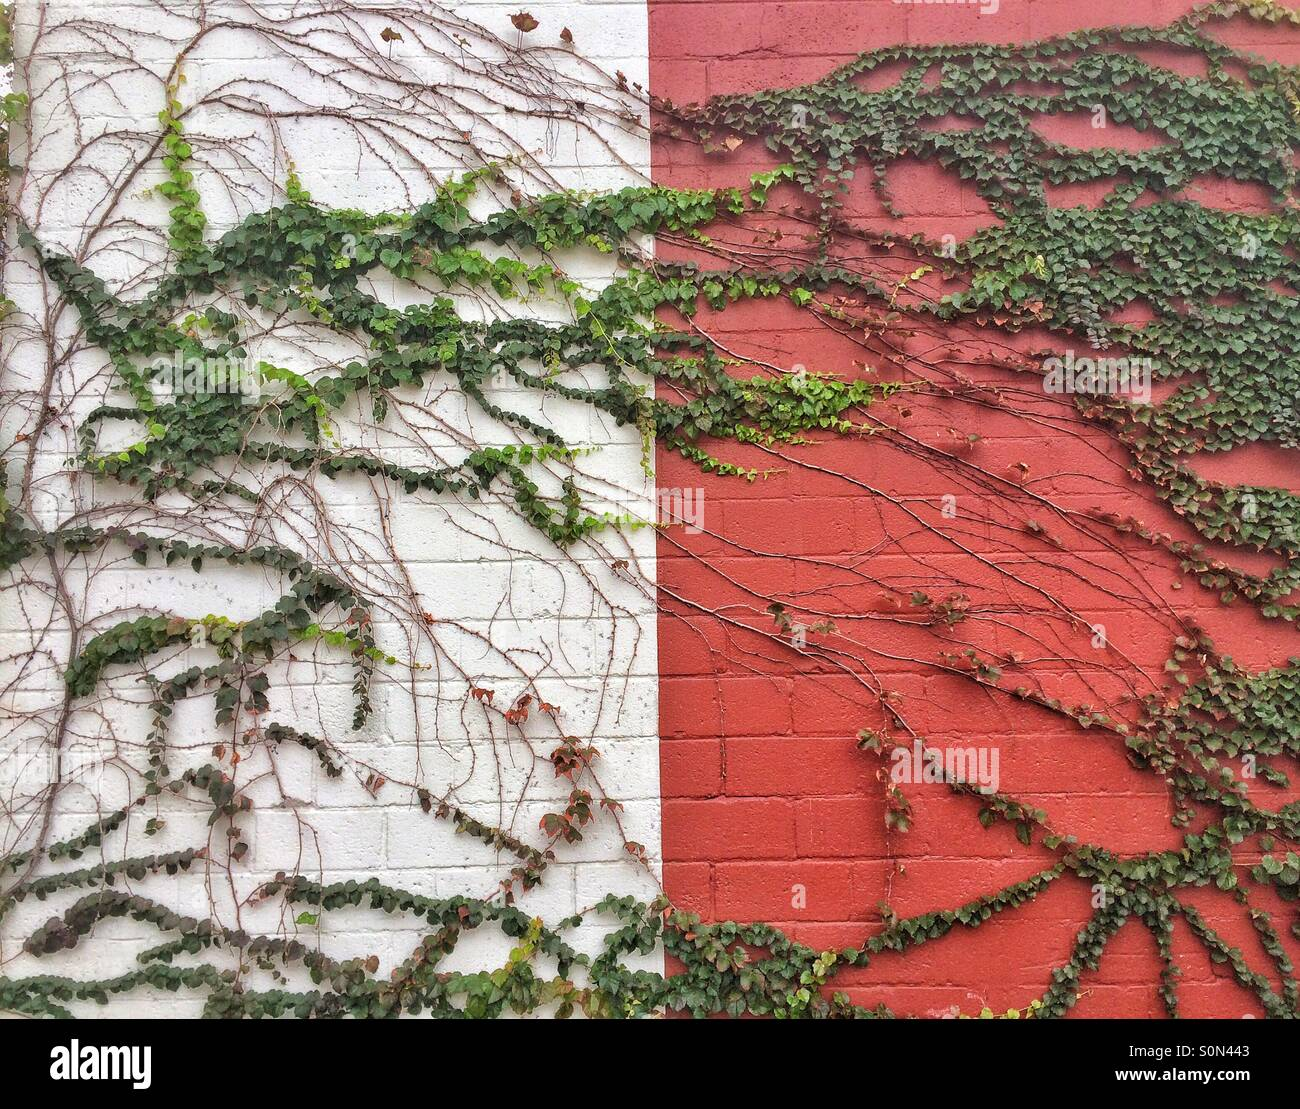 Vines on wall - Stock Image